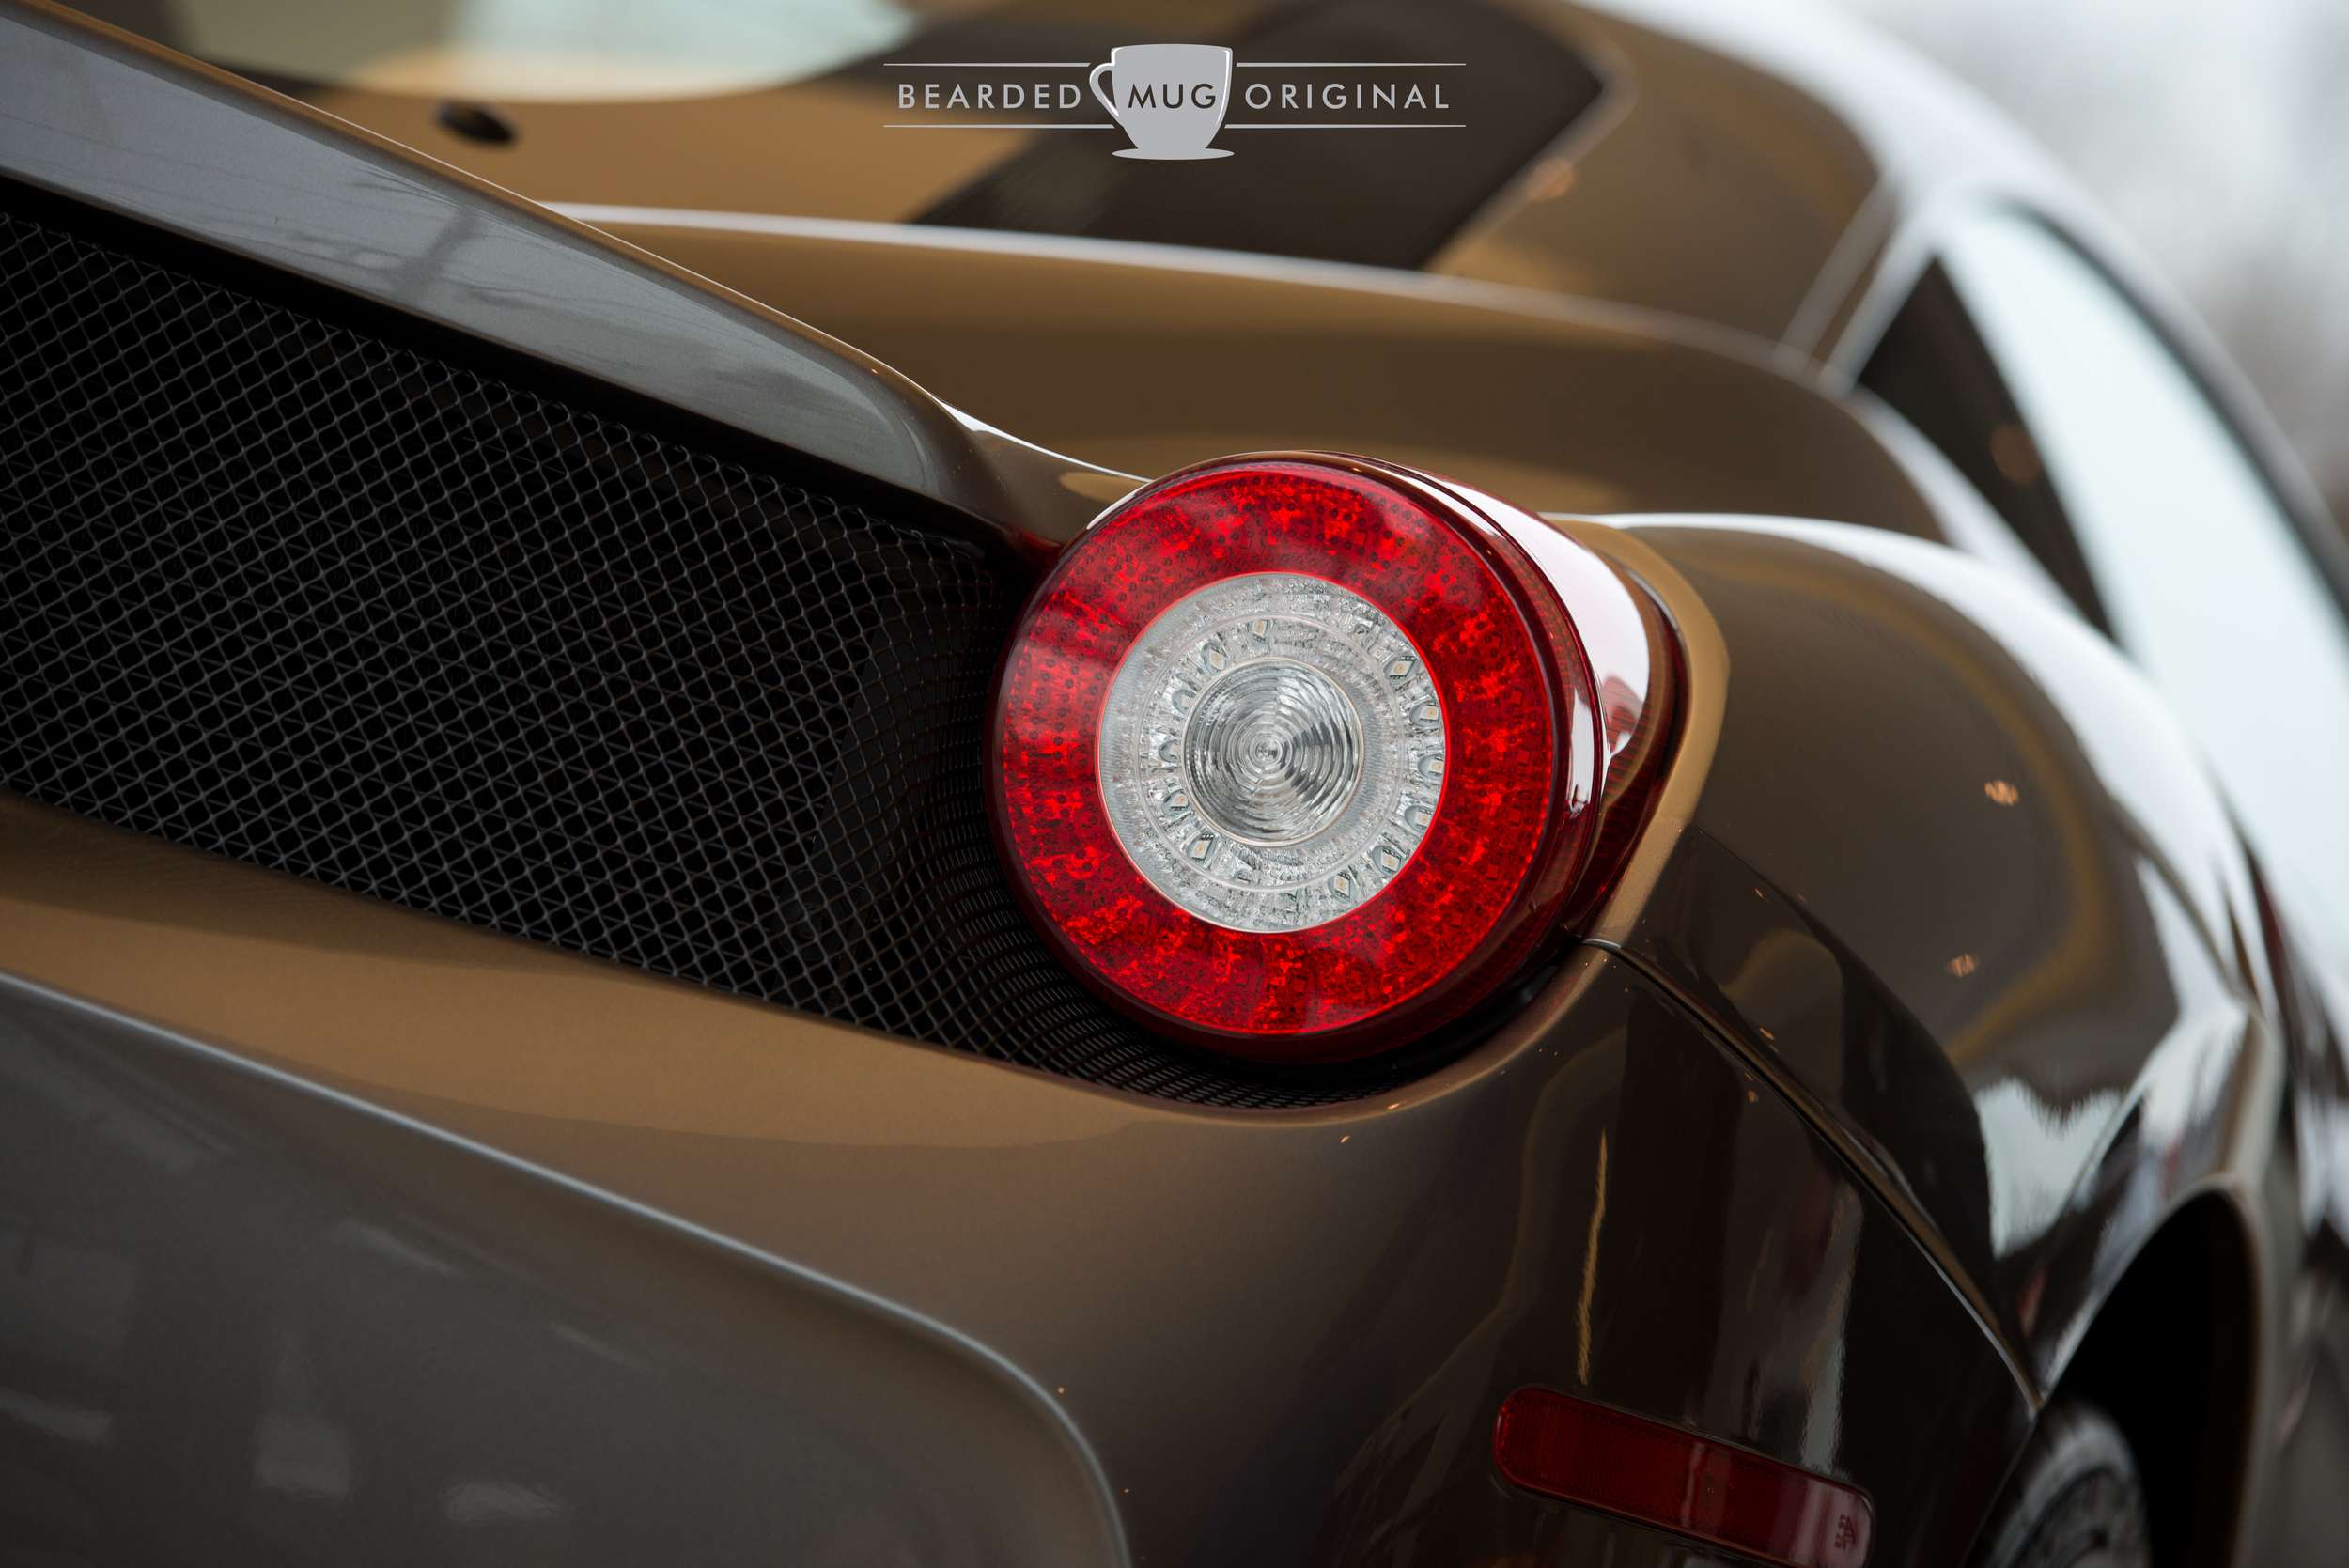 The Speciale is the curviest of the 458 derivatives.